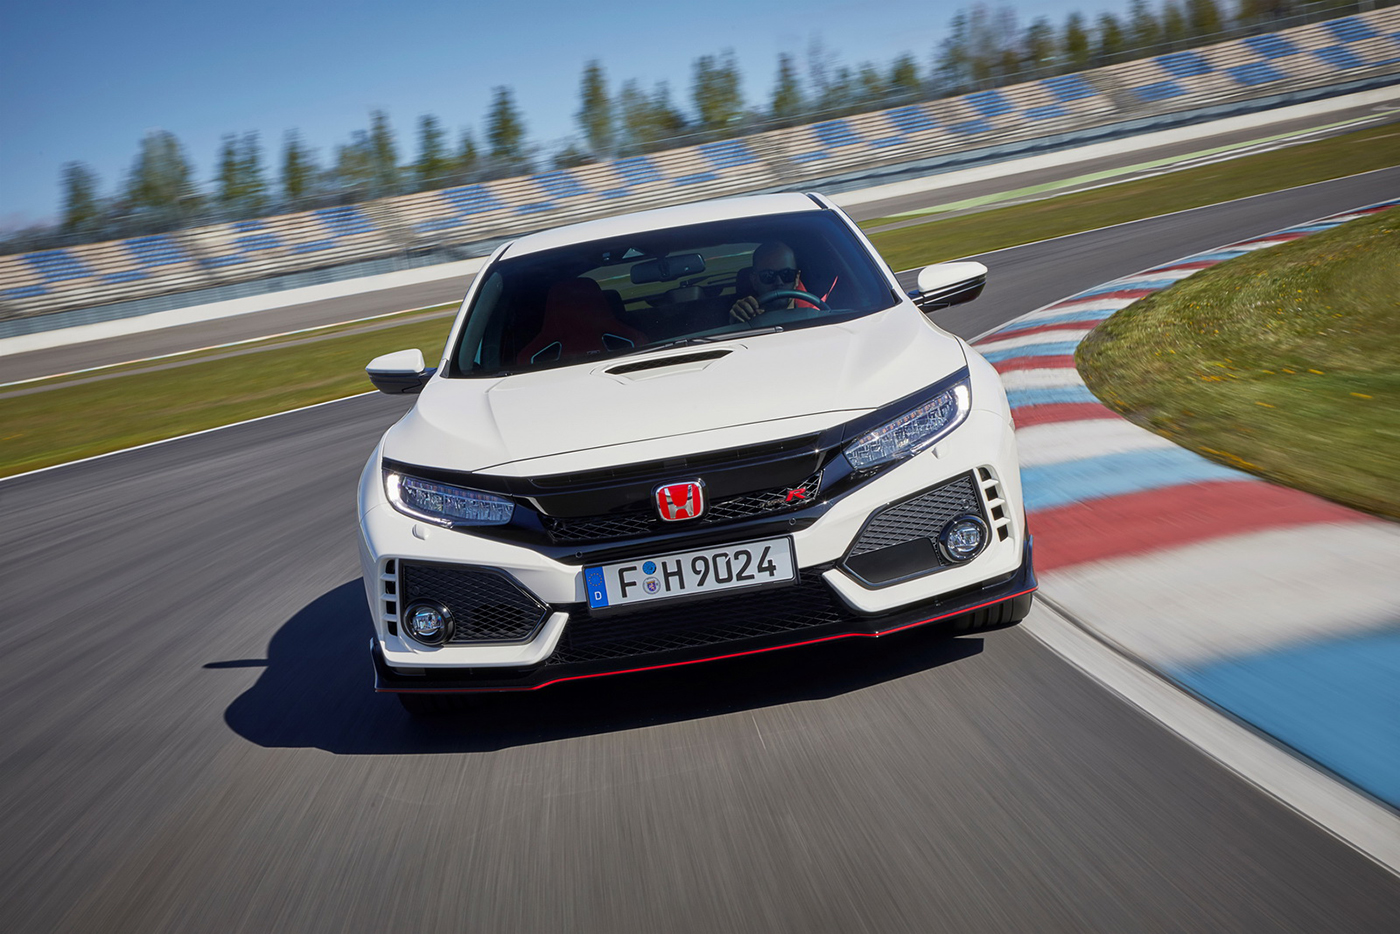 honda-civic-type-r-2018-10.jpg